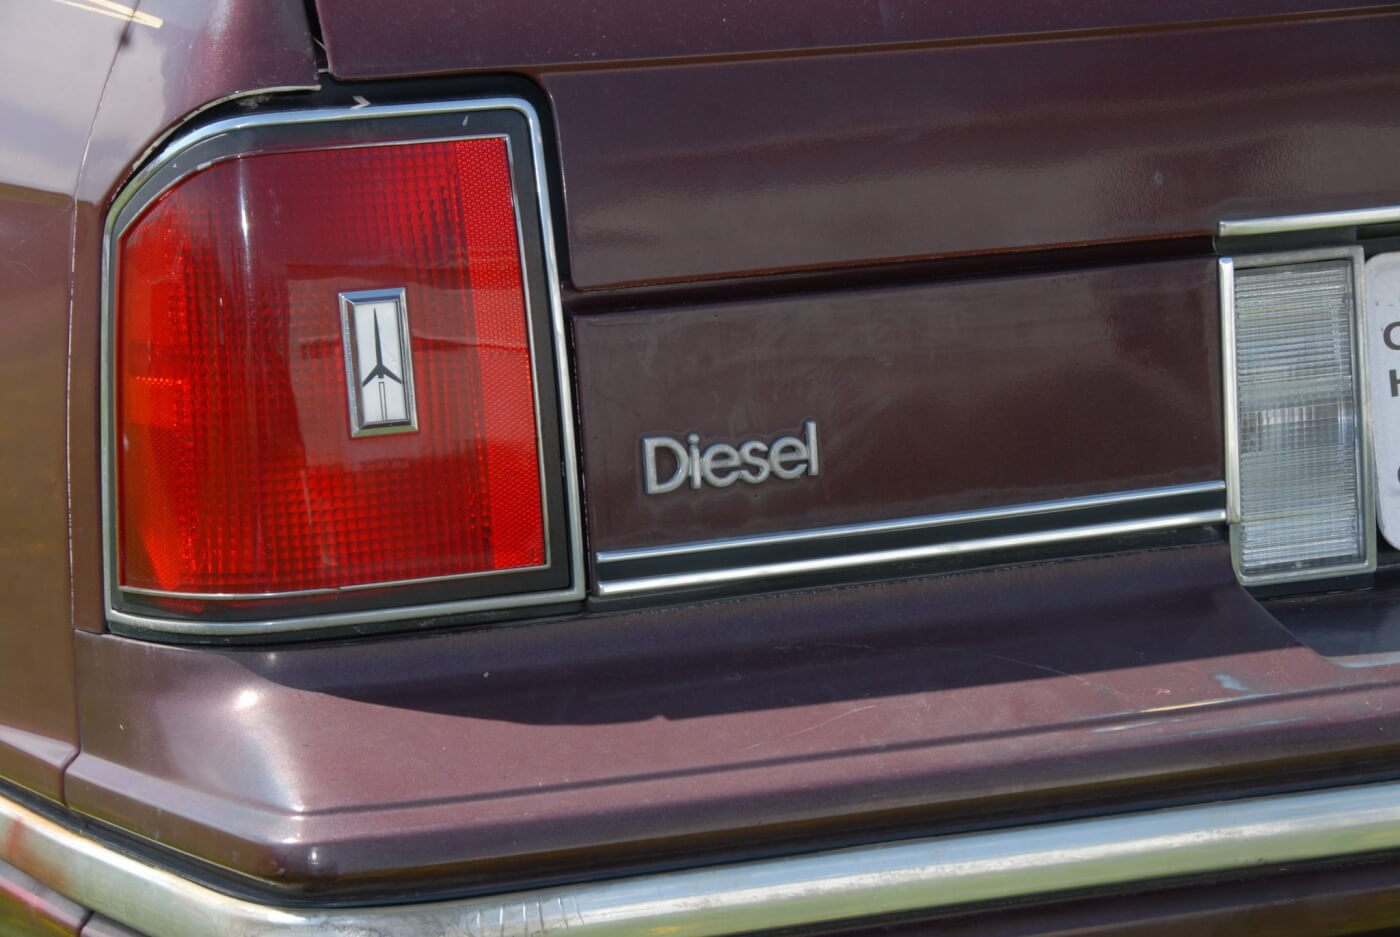 Other than the black smoke and the noise, there was little to signify a diesel from a gasser aside from the badge on the trunk lid. The diesel had a slightly larger fuel tank than the gas cars, which gave them a cruising range of around 600 miles.